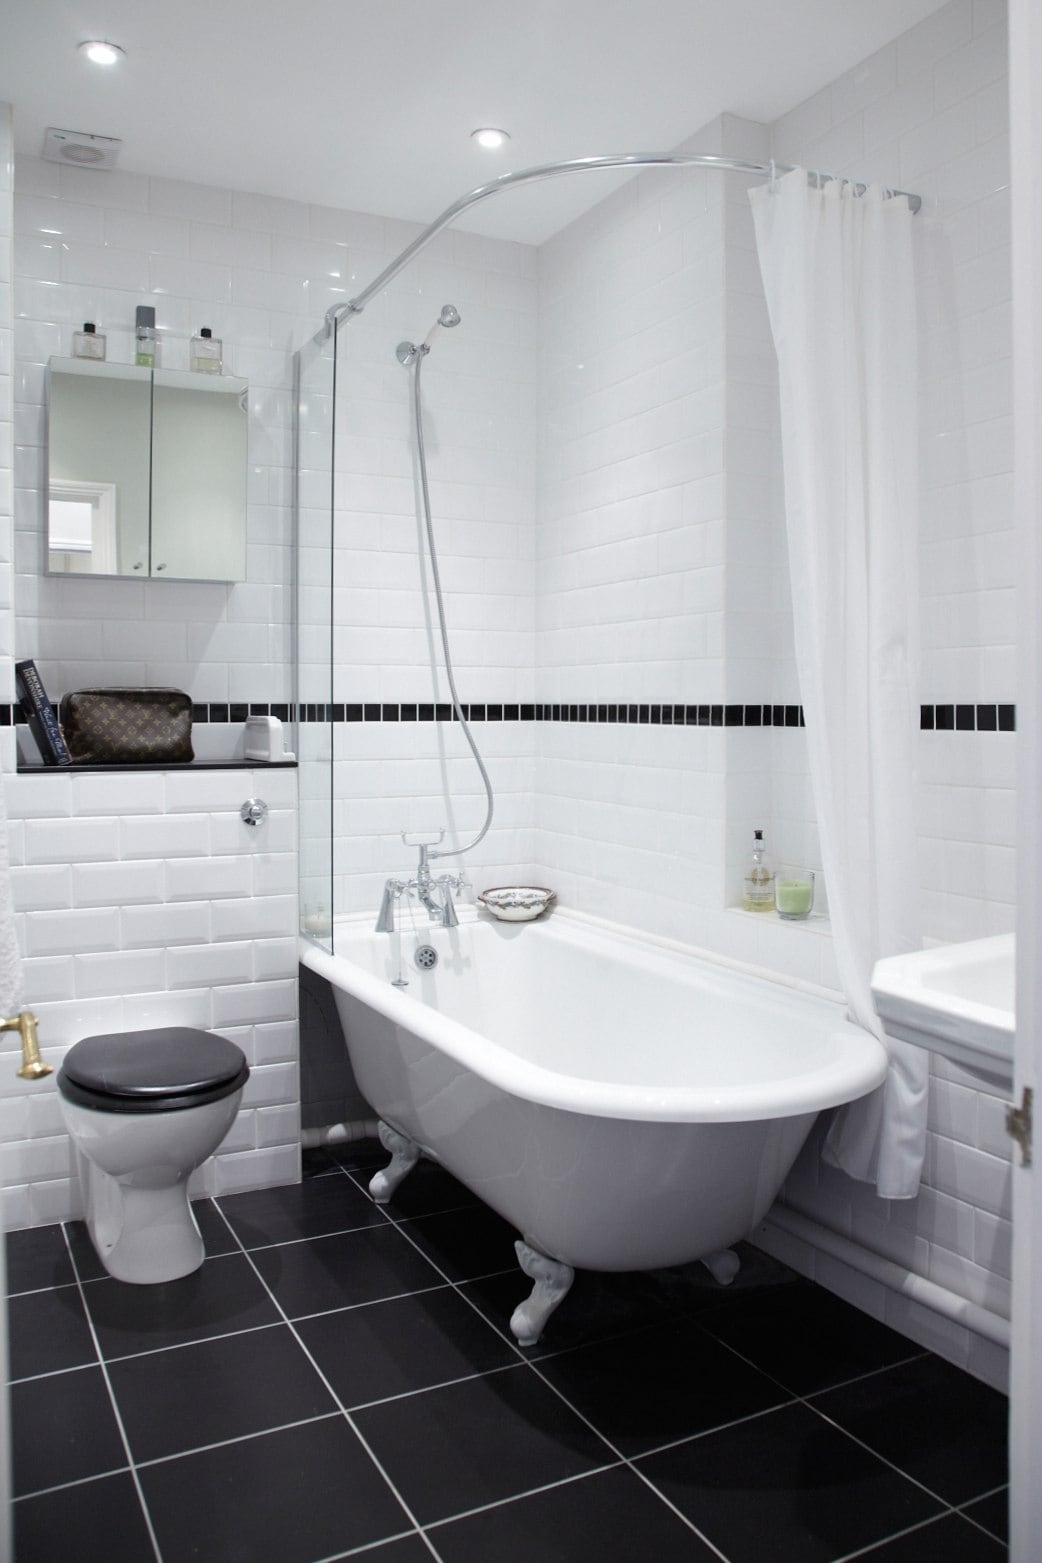 bathroom, with bath with shower over it this is shared by both bedrooms.